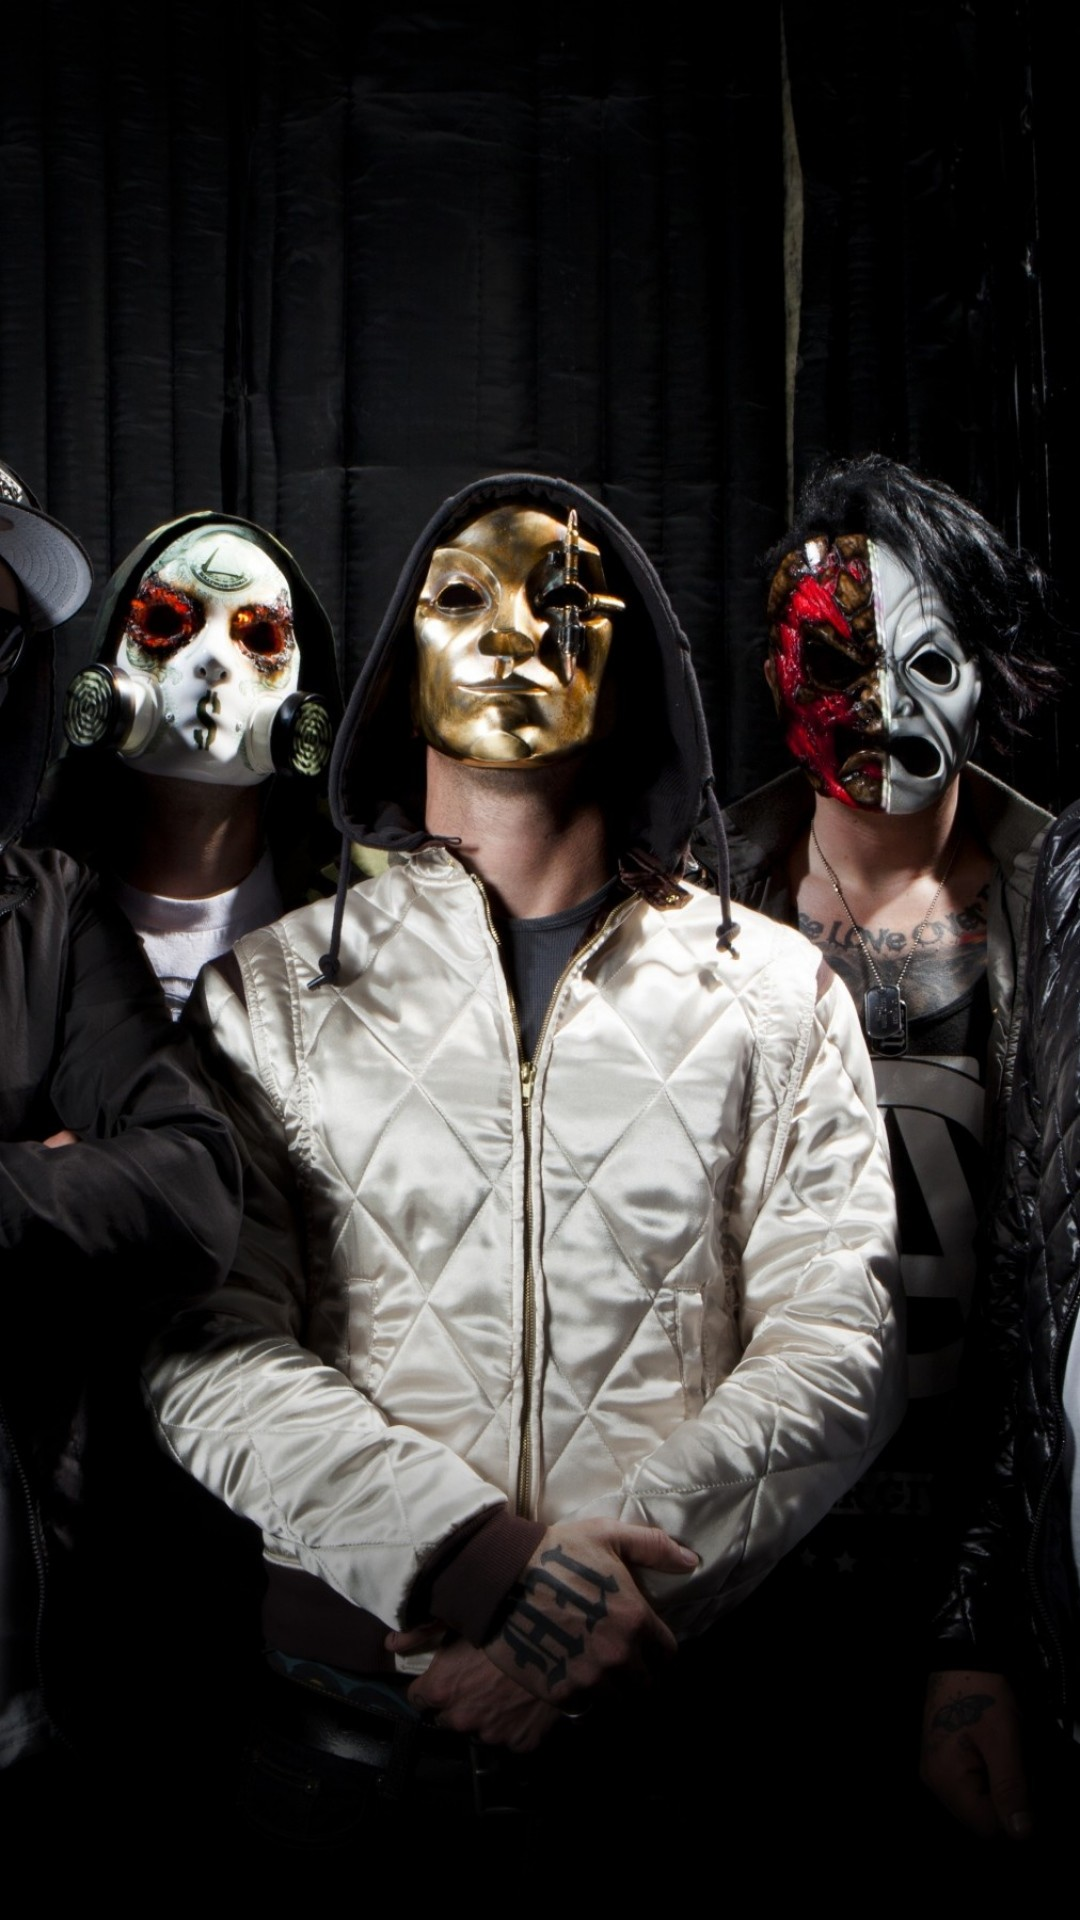 1080x1920  Wallpaper hollywood undead, hollywood, undead, musicians